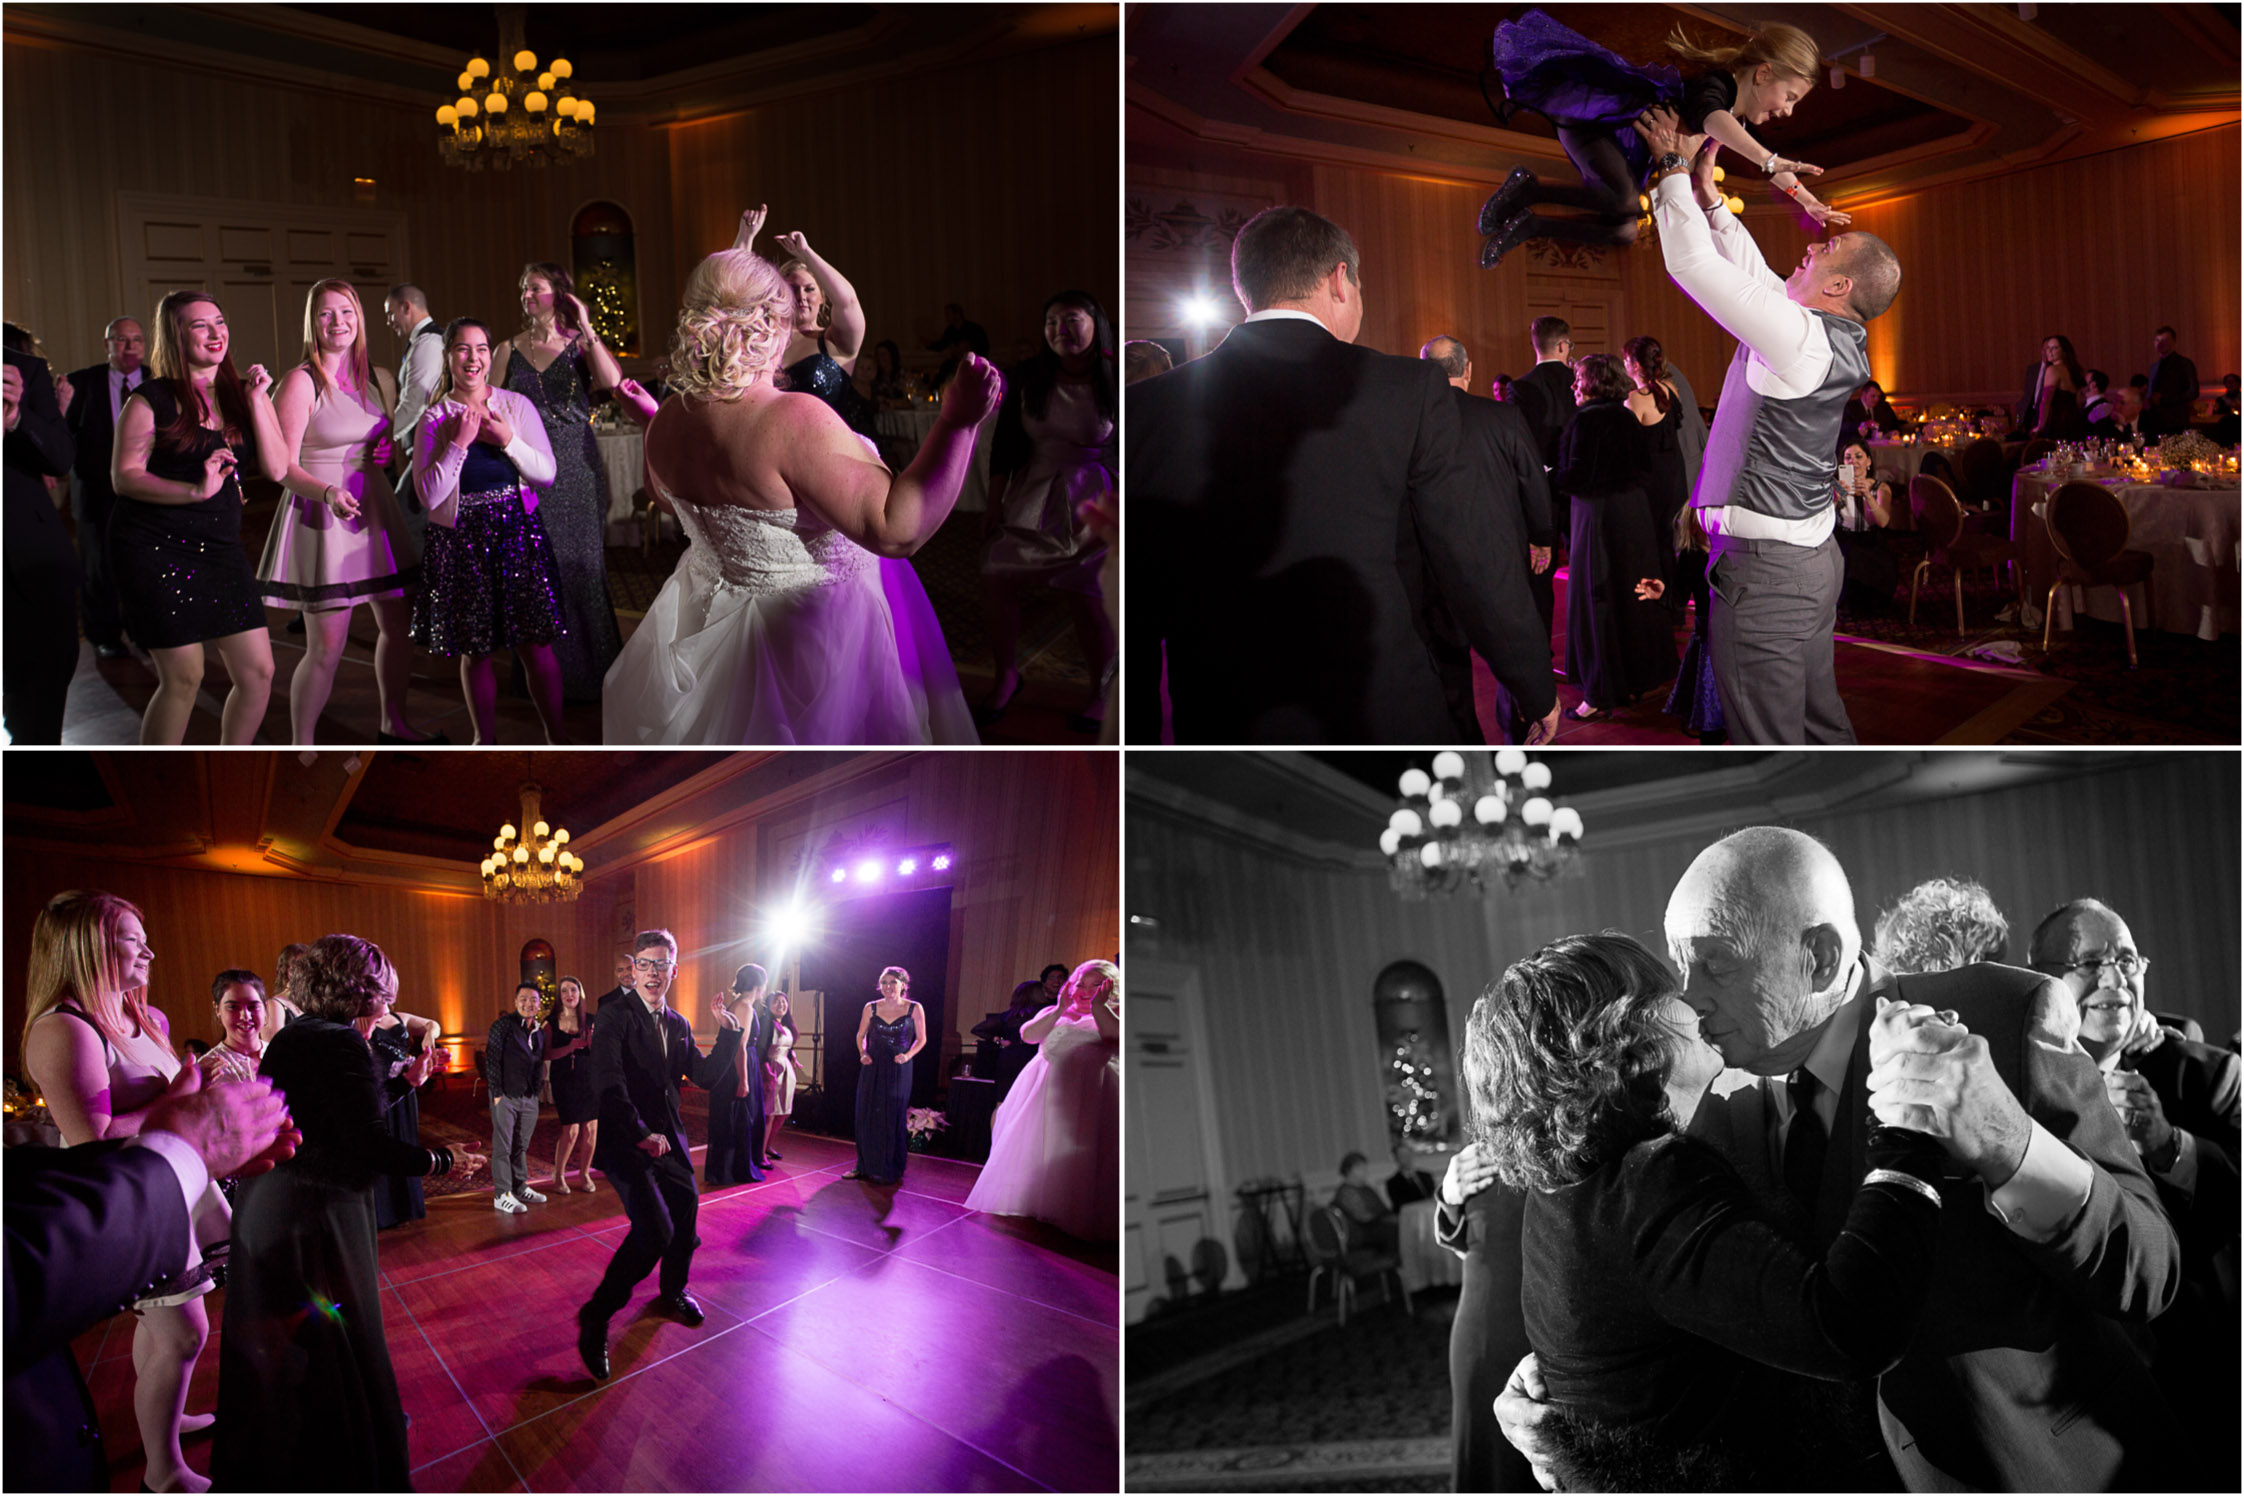 22-the-st-paul-hotel-minnesota-wedding-reception-dance-fun-mahonen-photography.jpg